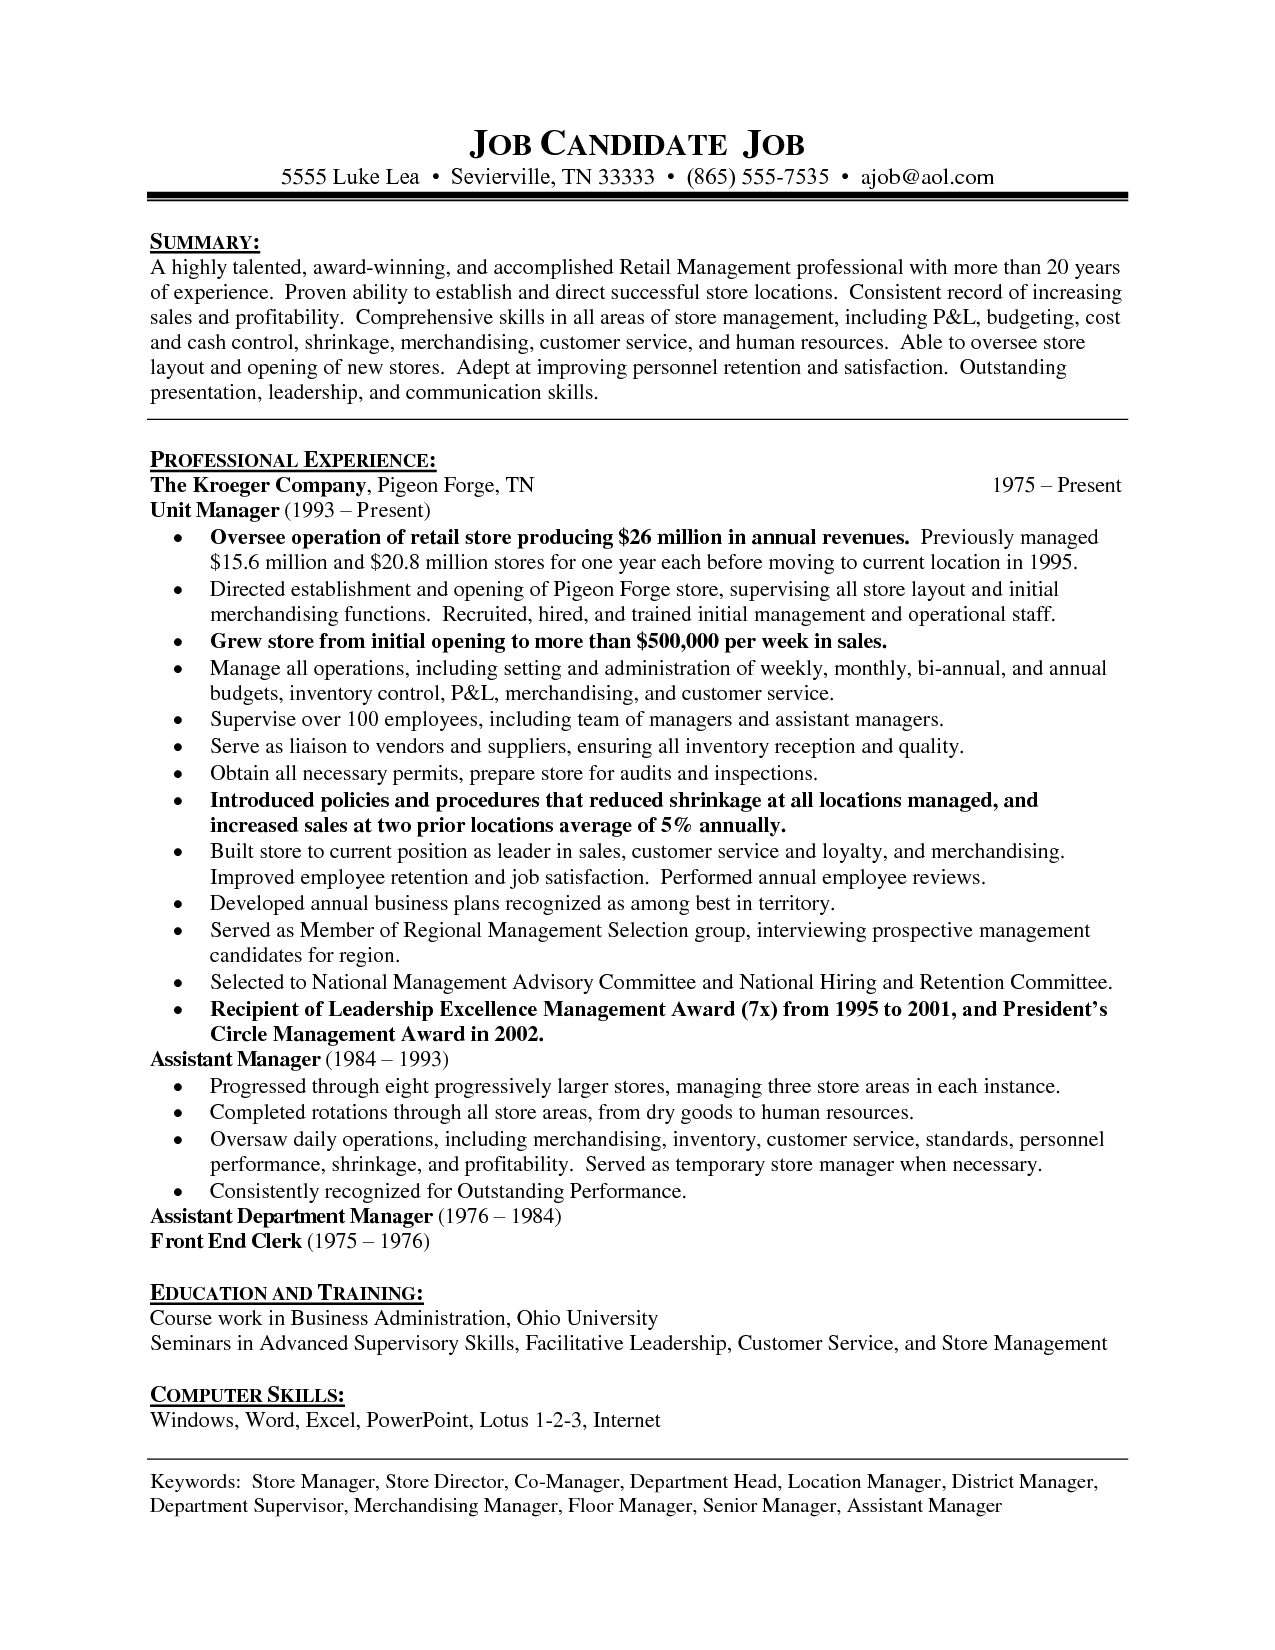 retail store manager resume samples department store manager resume grocery store manager resume resume. Resume Example. Resume CV Cover Letter